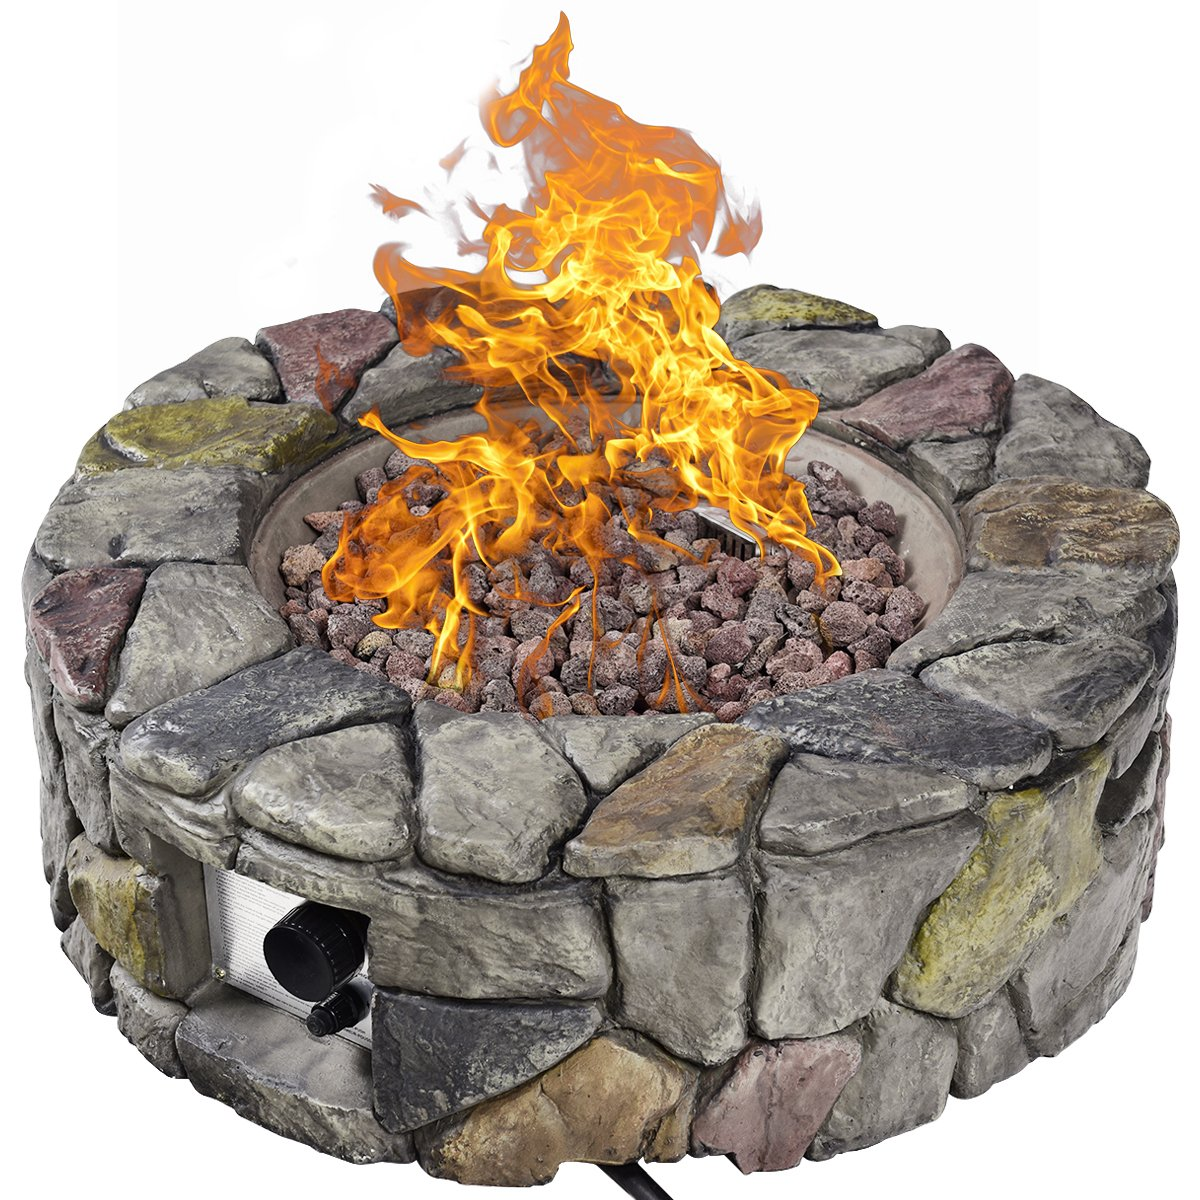 Giantex Gas Fire Pit Table Heavy Duty Outdoor Patio Natural Stone Rocks W Cover for Backyard, Garden Stainless-Steel Gas Burner